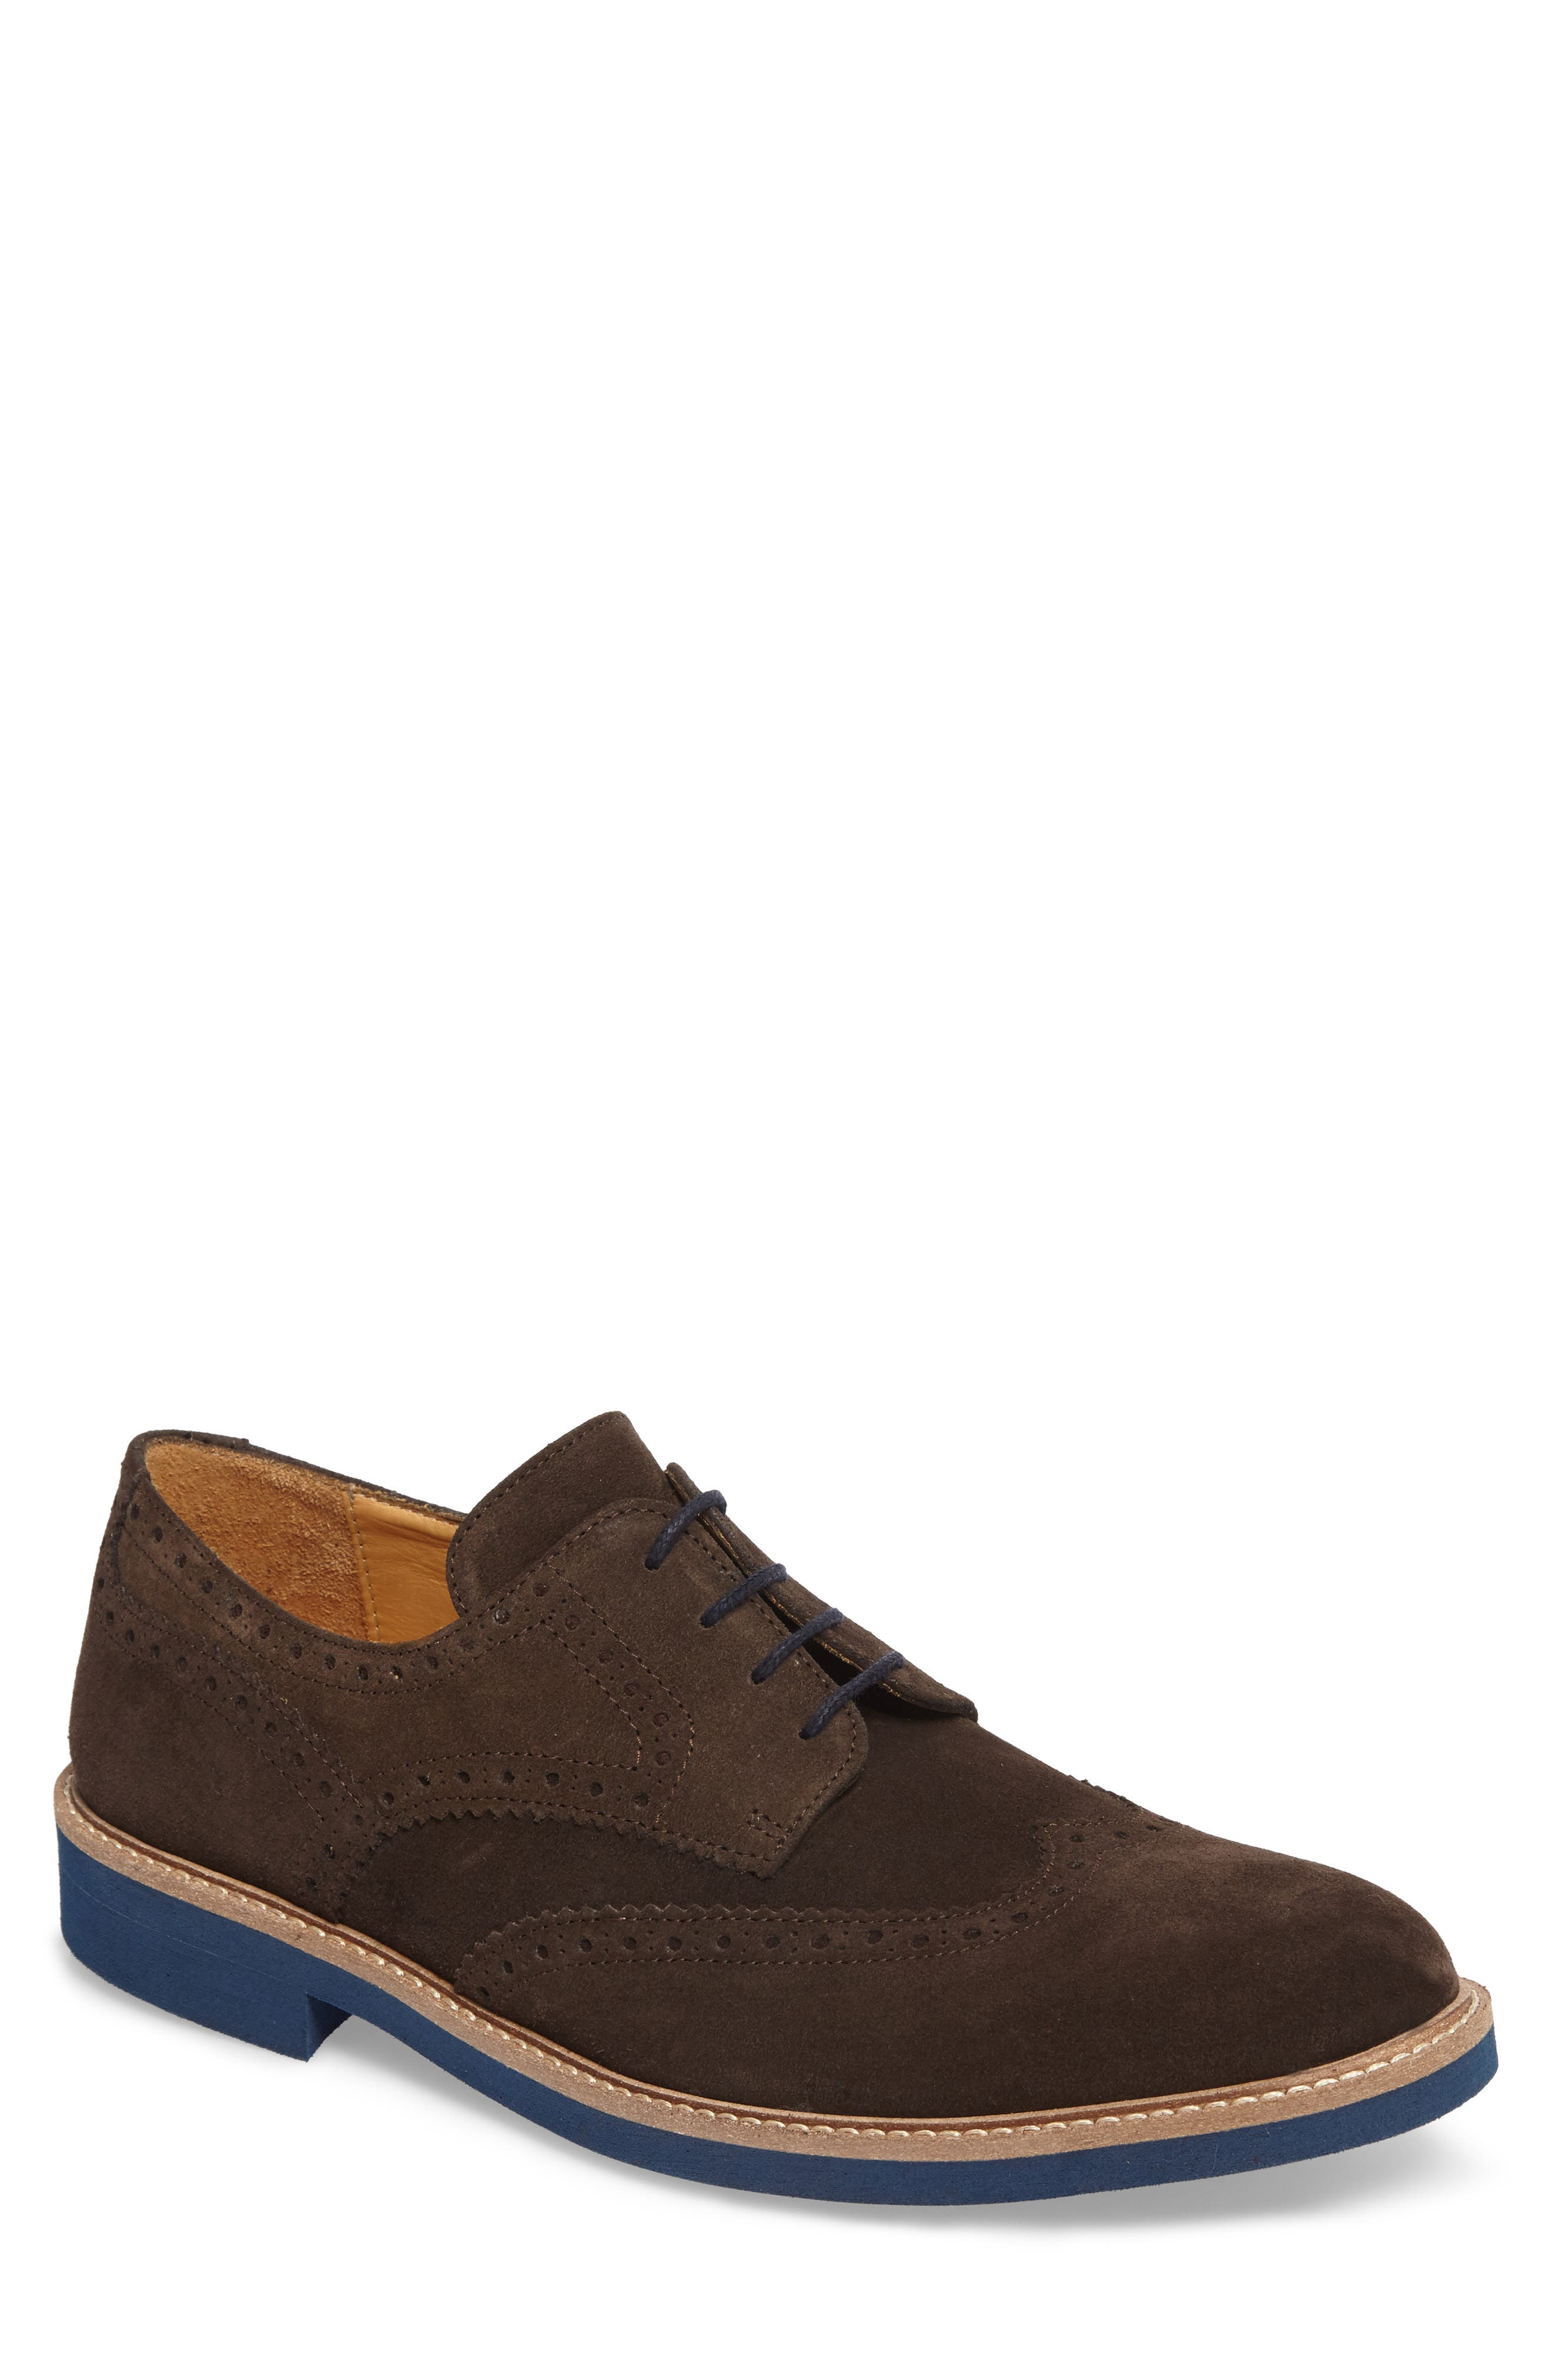 Southports Wingtip,                             Main thumbnail 1, color,                             Brown Suede